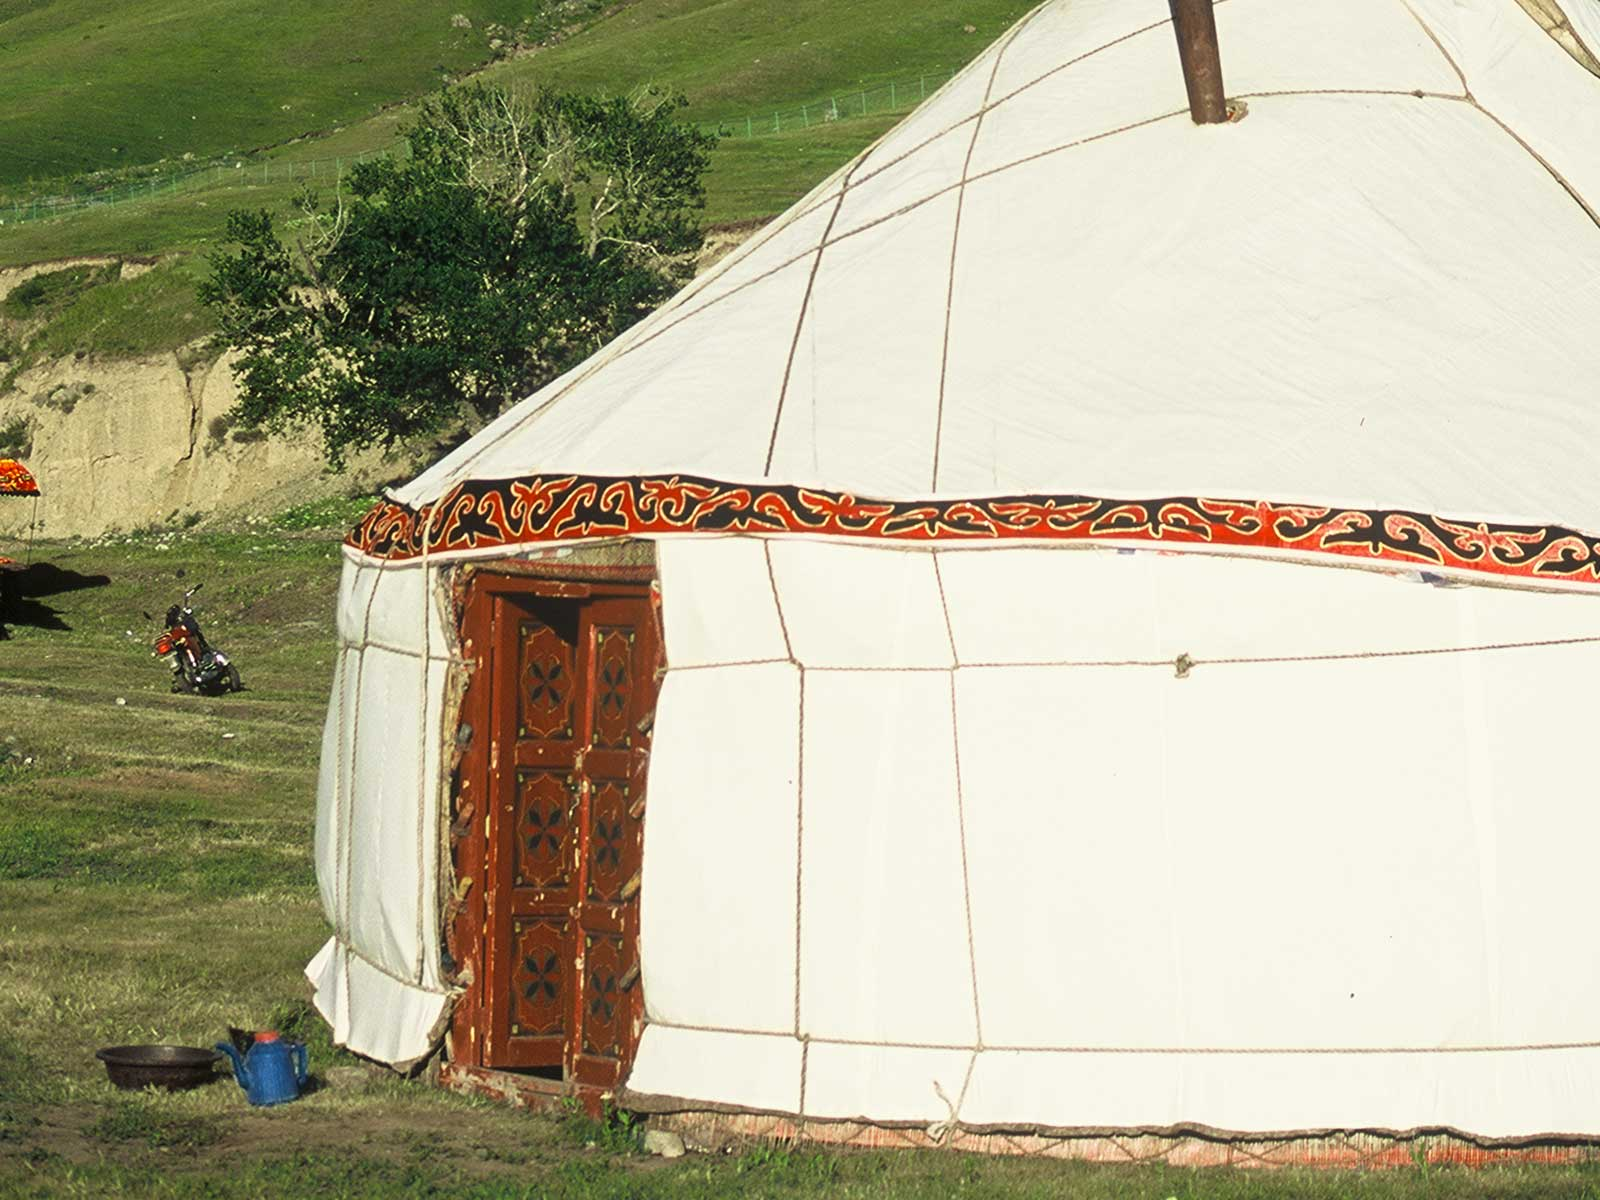 Kazakh Yurt - Tianshan - Heavenly Mountains - Xinjiang China - Silk Road Research - Dr Steven Andrew Martin - Photo Journal